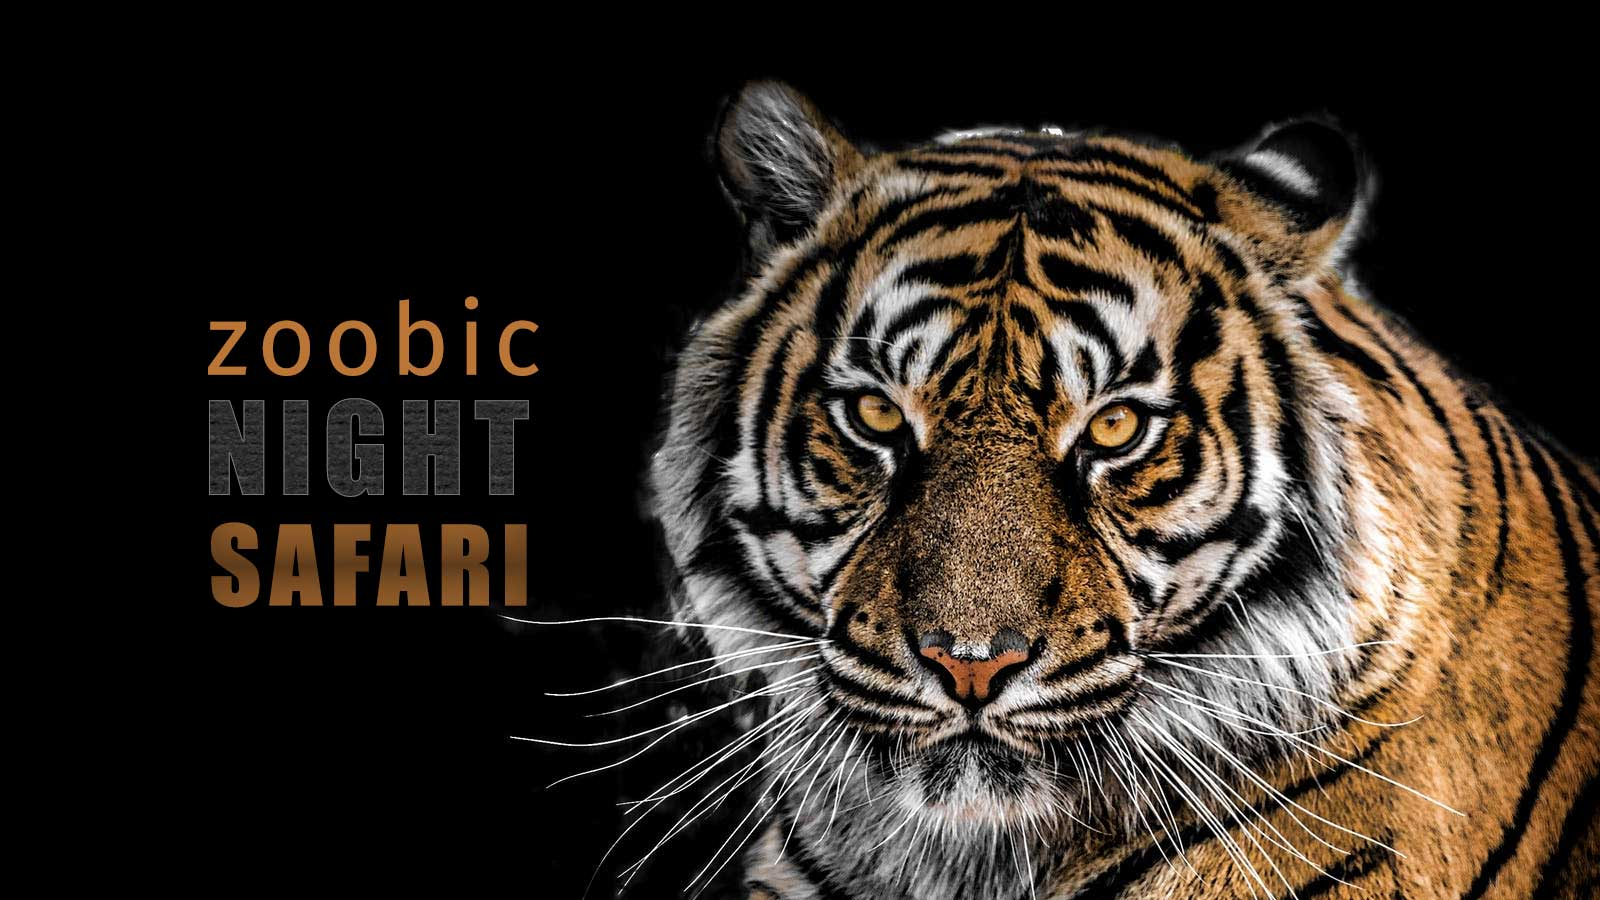 Zoobic Night Safari 2019